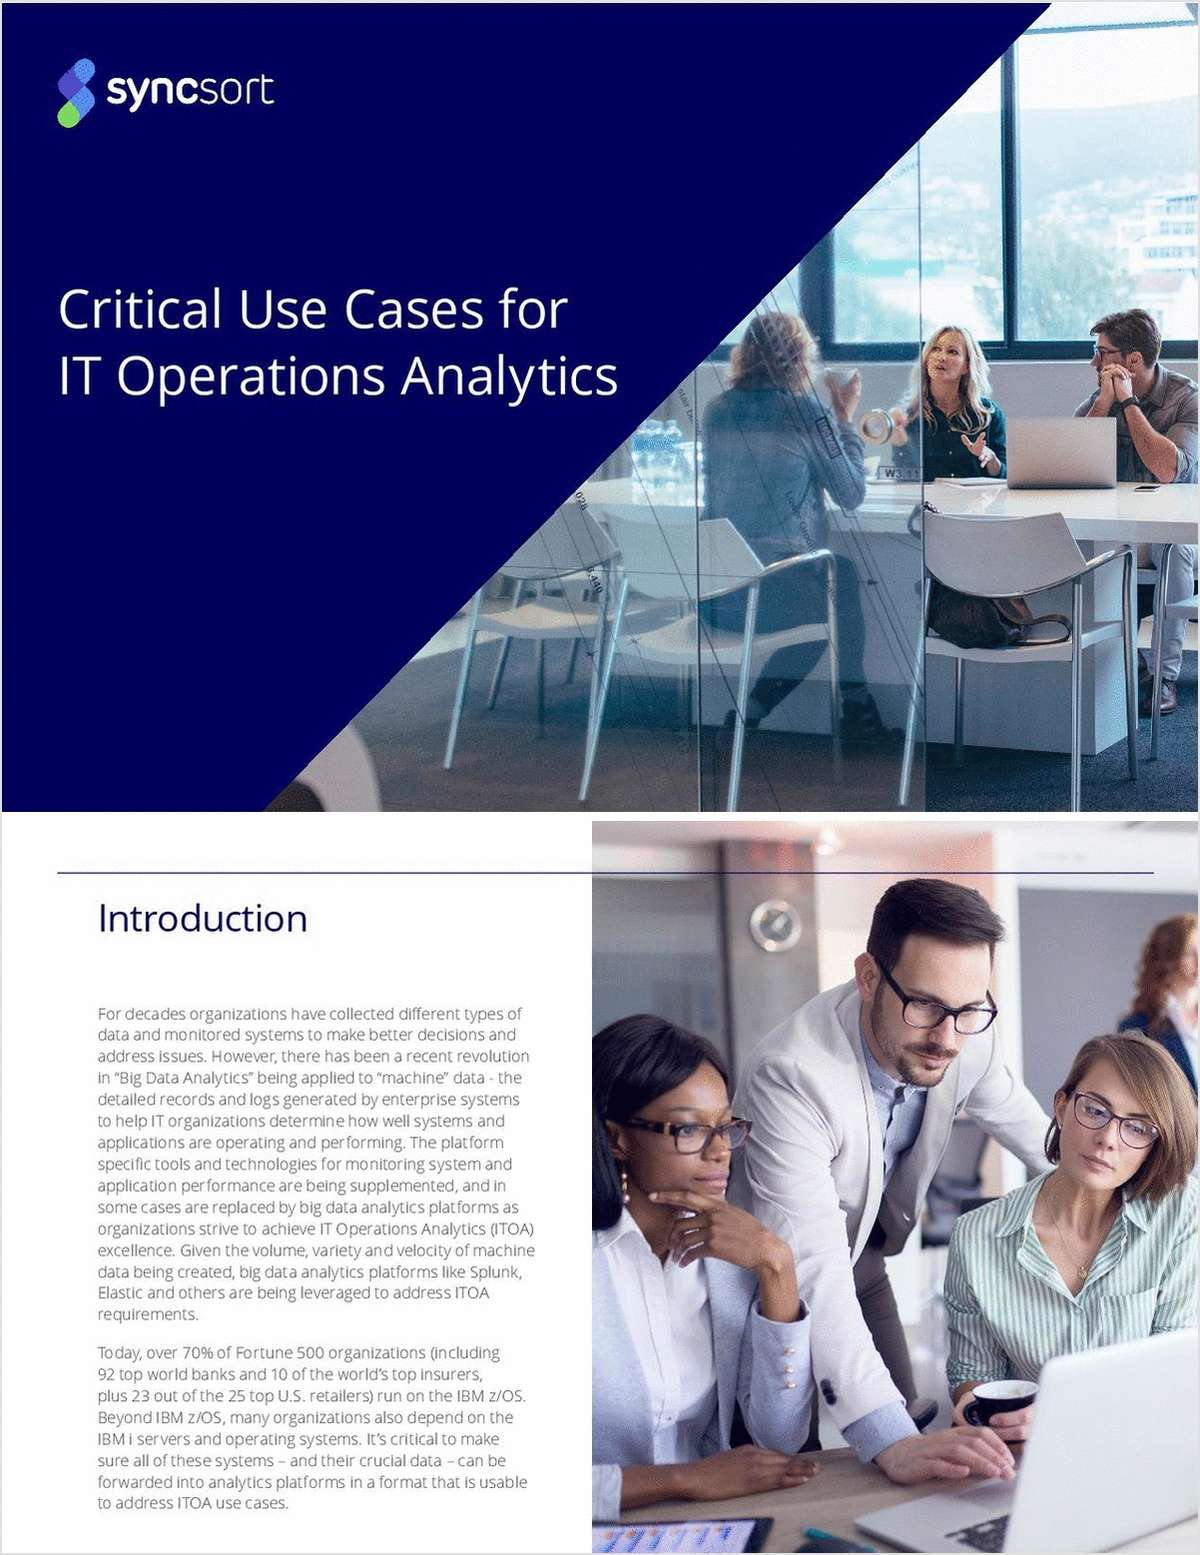 Critical Use Cases for IT Operations Analytics